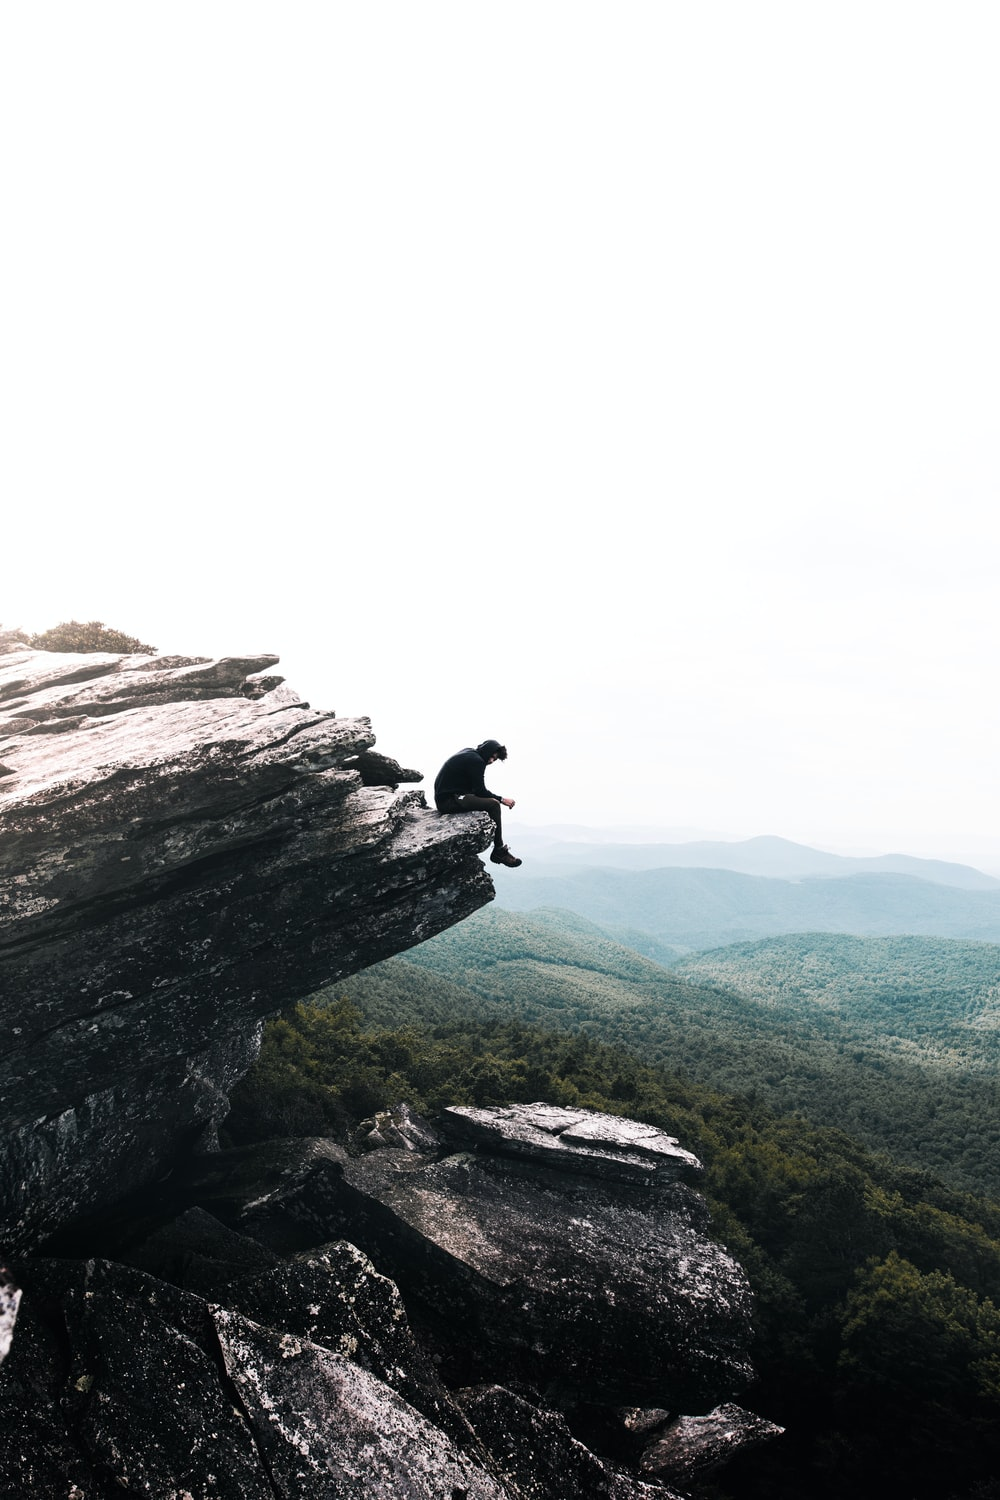 person sitting on rock formations